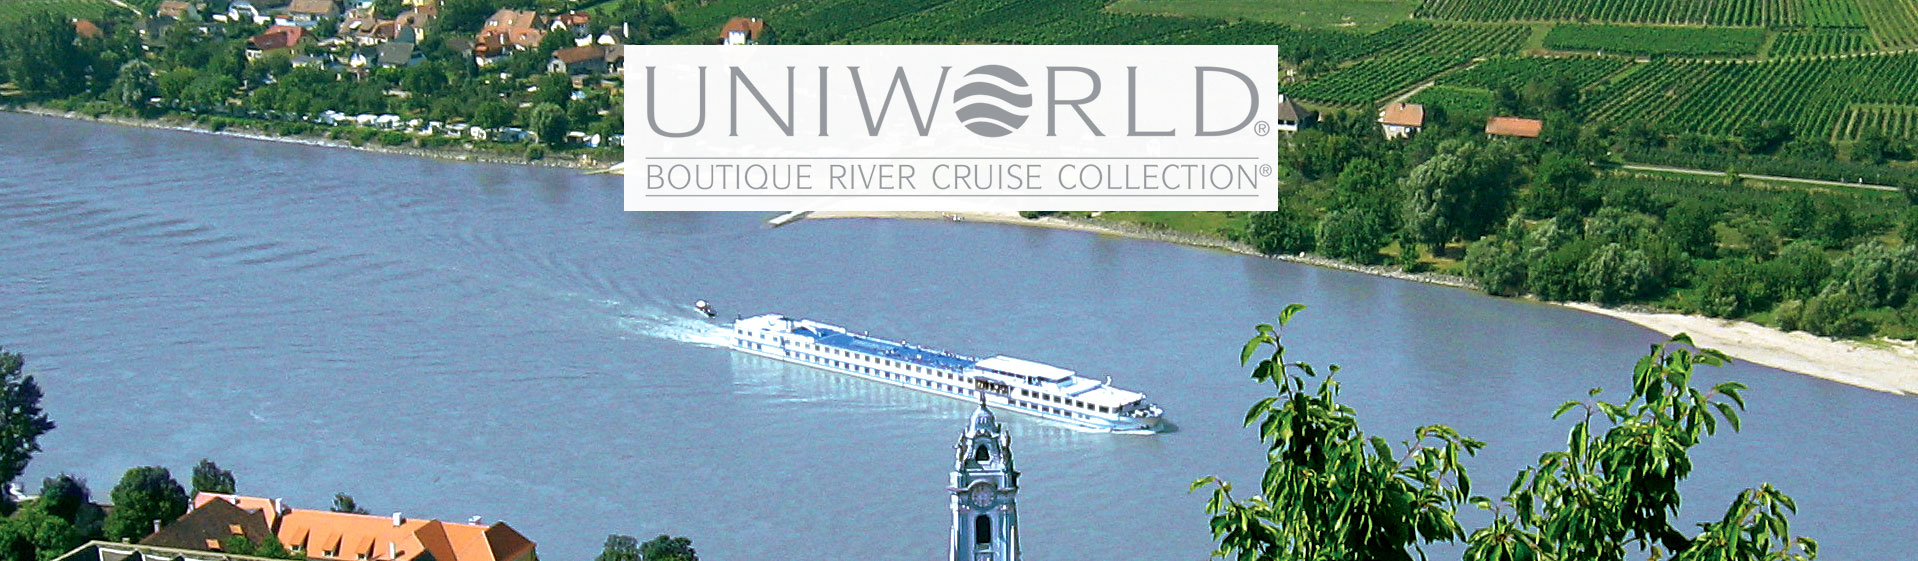 <br /> <b>Notice</b>:  Undefined variable: cruise_line in <b>/home/cruiseex/public_html/cruise-lines.php</b> on line <b>88</b><br />